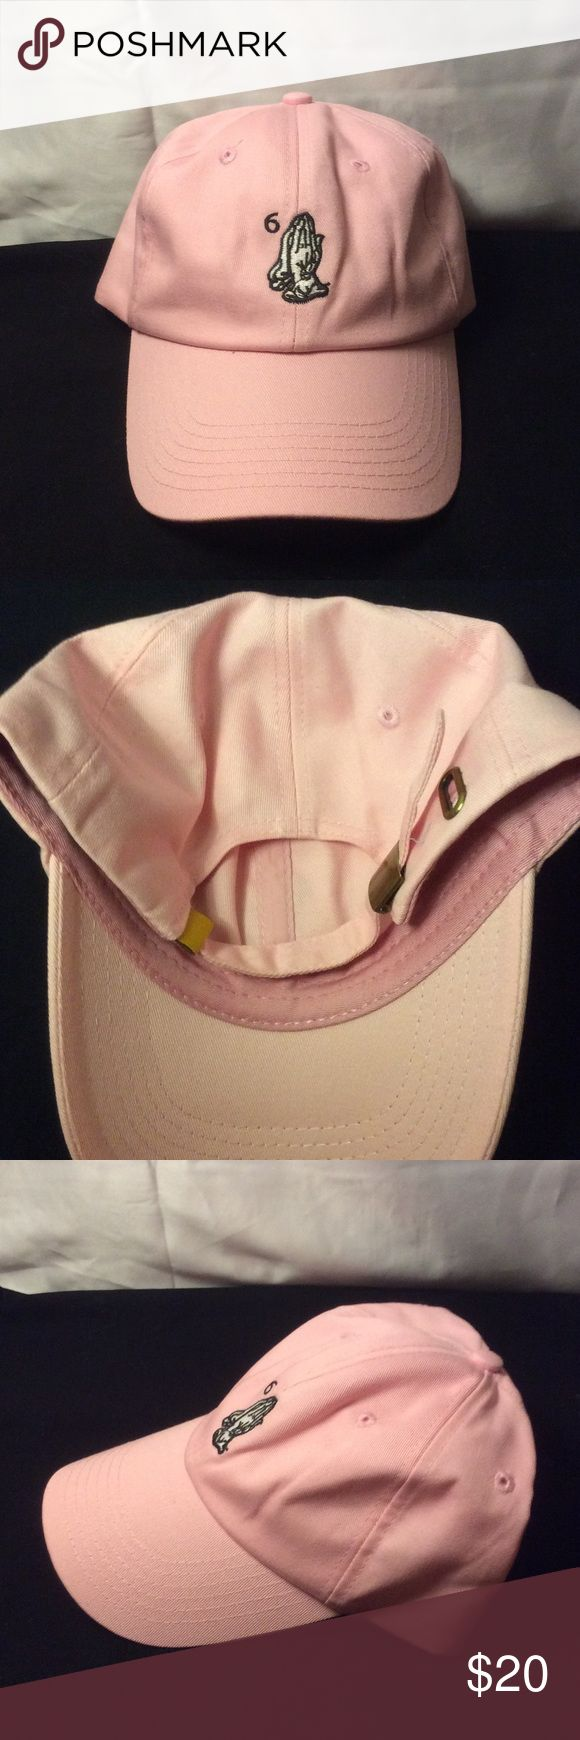 Drake Ovo 6 God prayer hands cap Drake Ovo prayer hands adjustable cap. Color is a light pink. Never worn! Unisex Accessories Hats